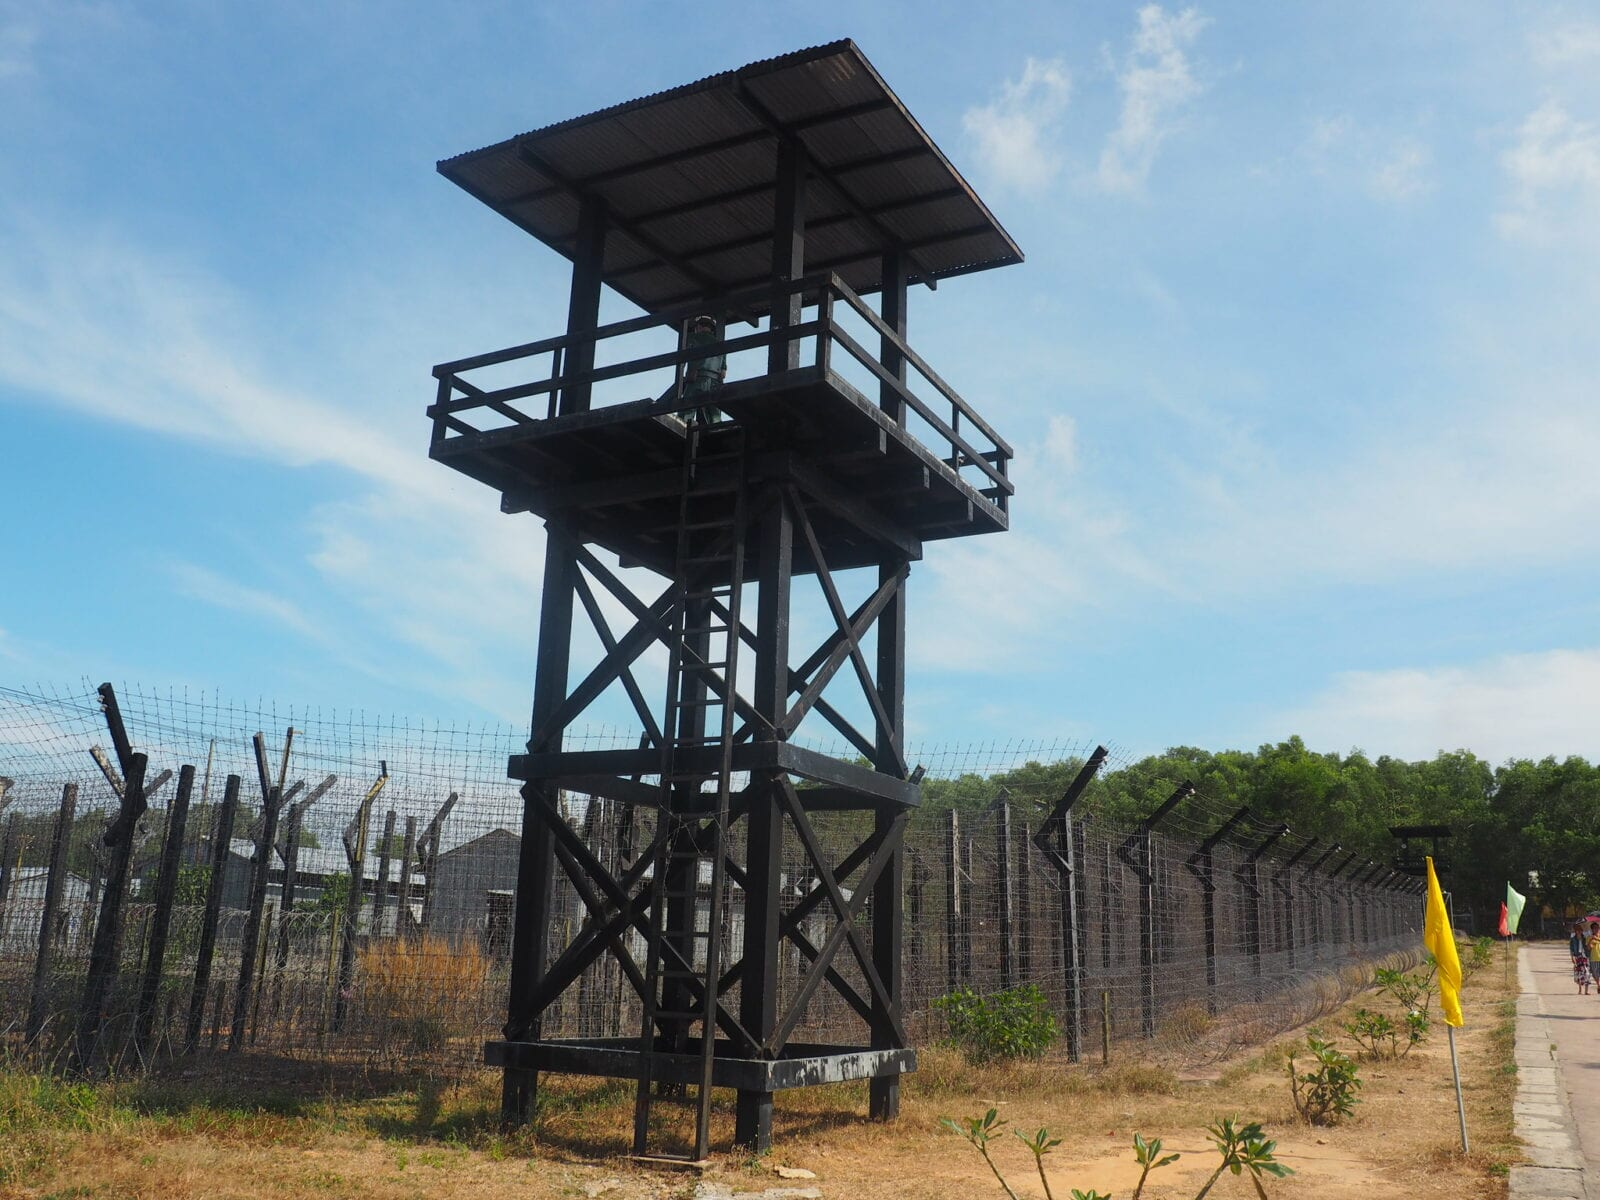 Image of a watchtower at the Phu Quoc Prison Museum in Vietnam